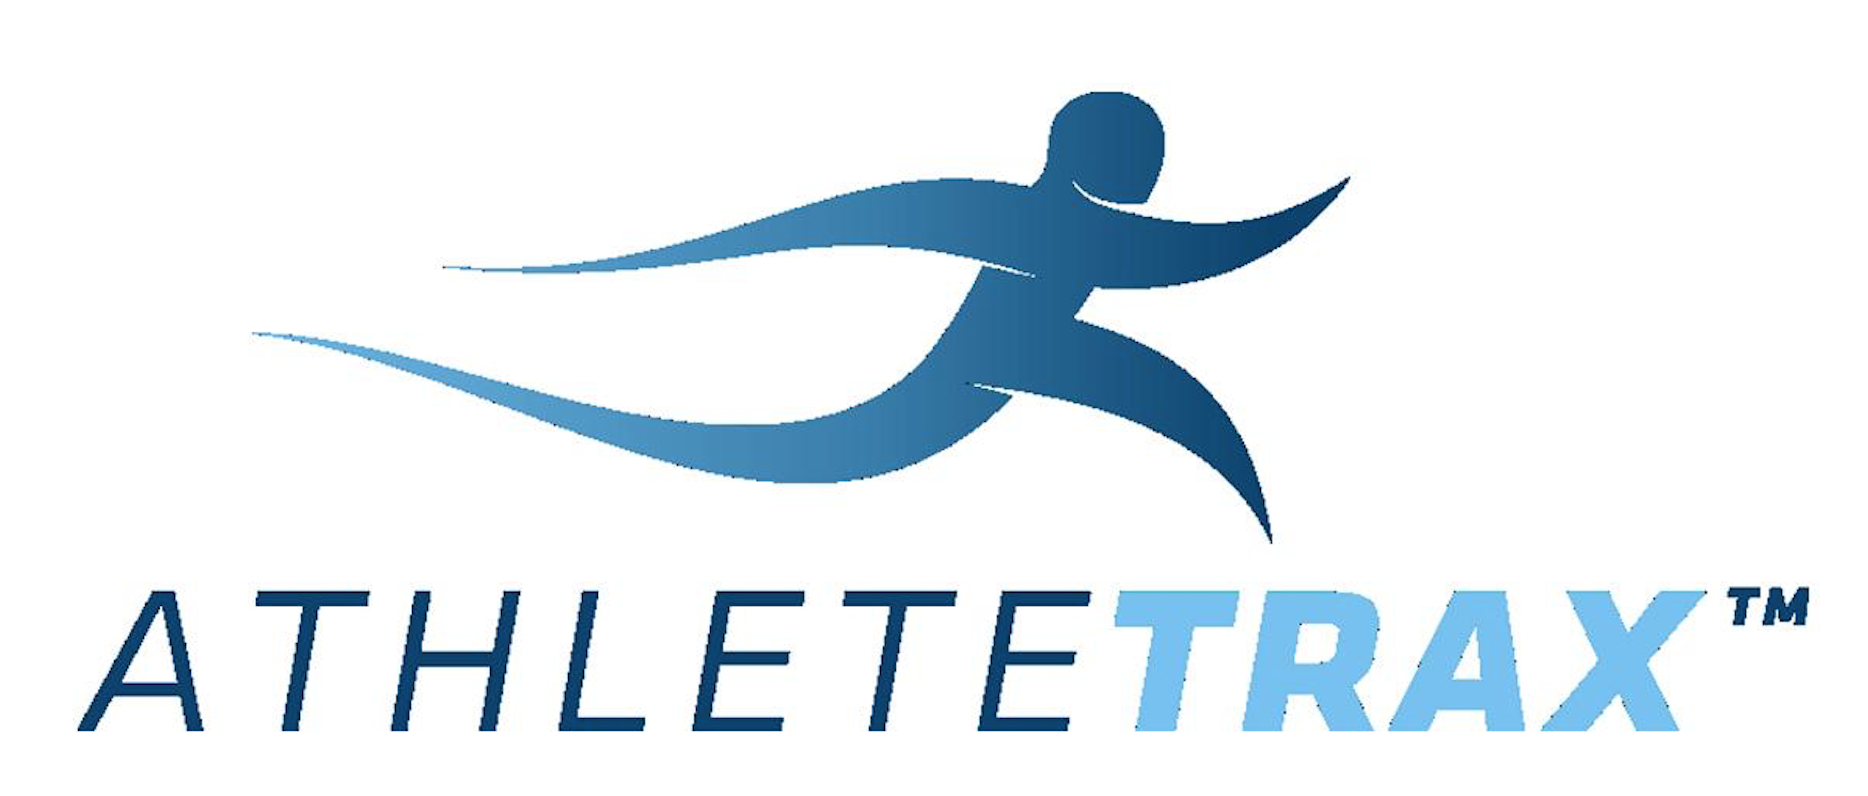 AthleteTrax logo